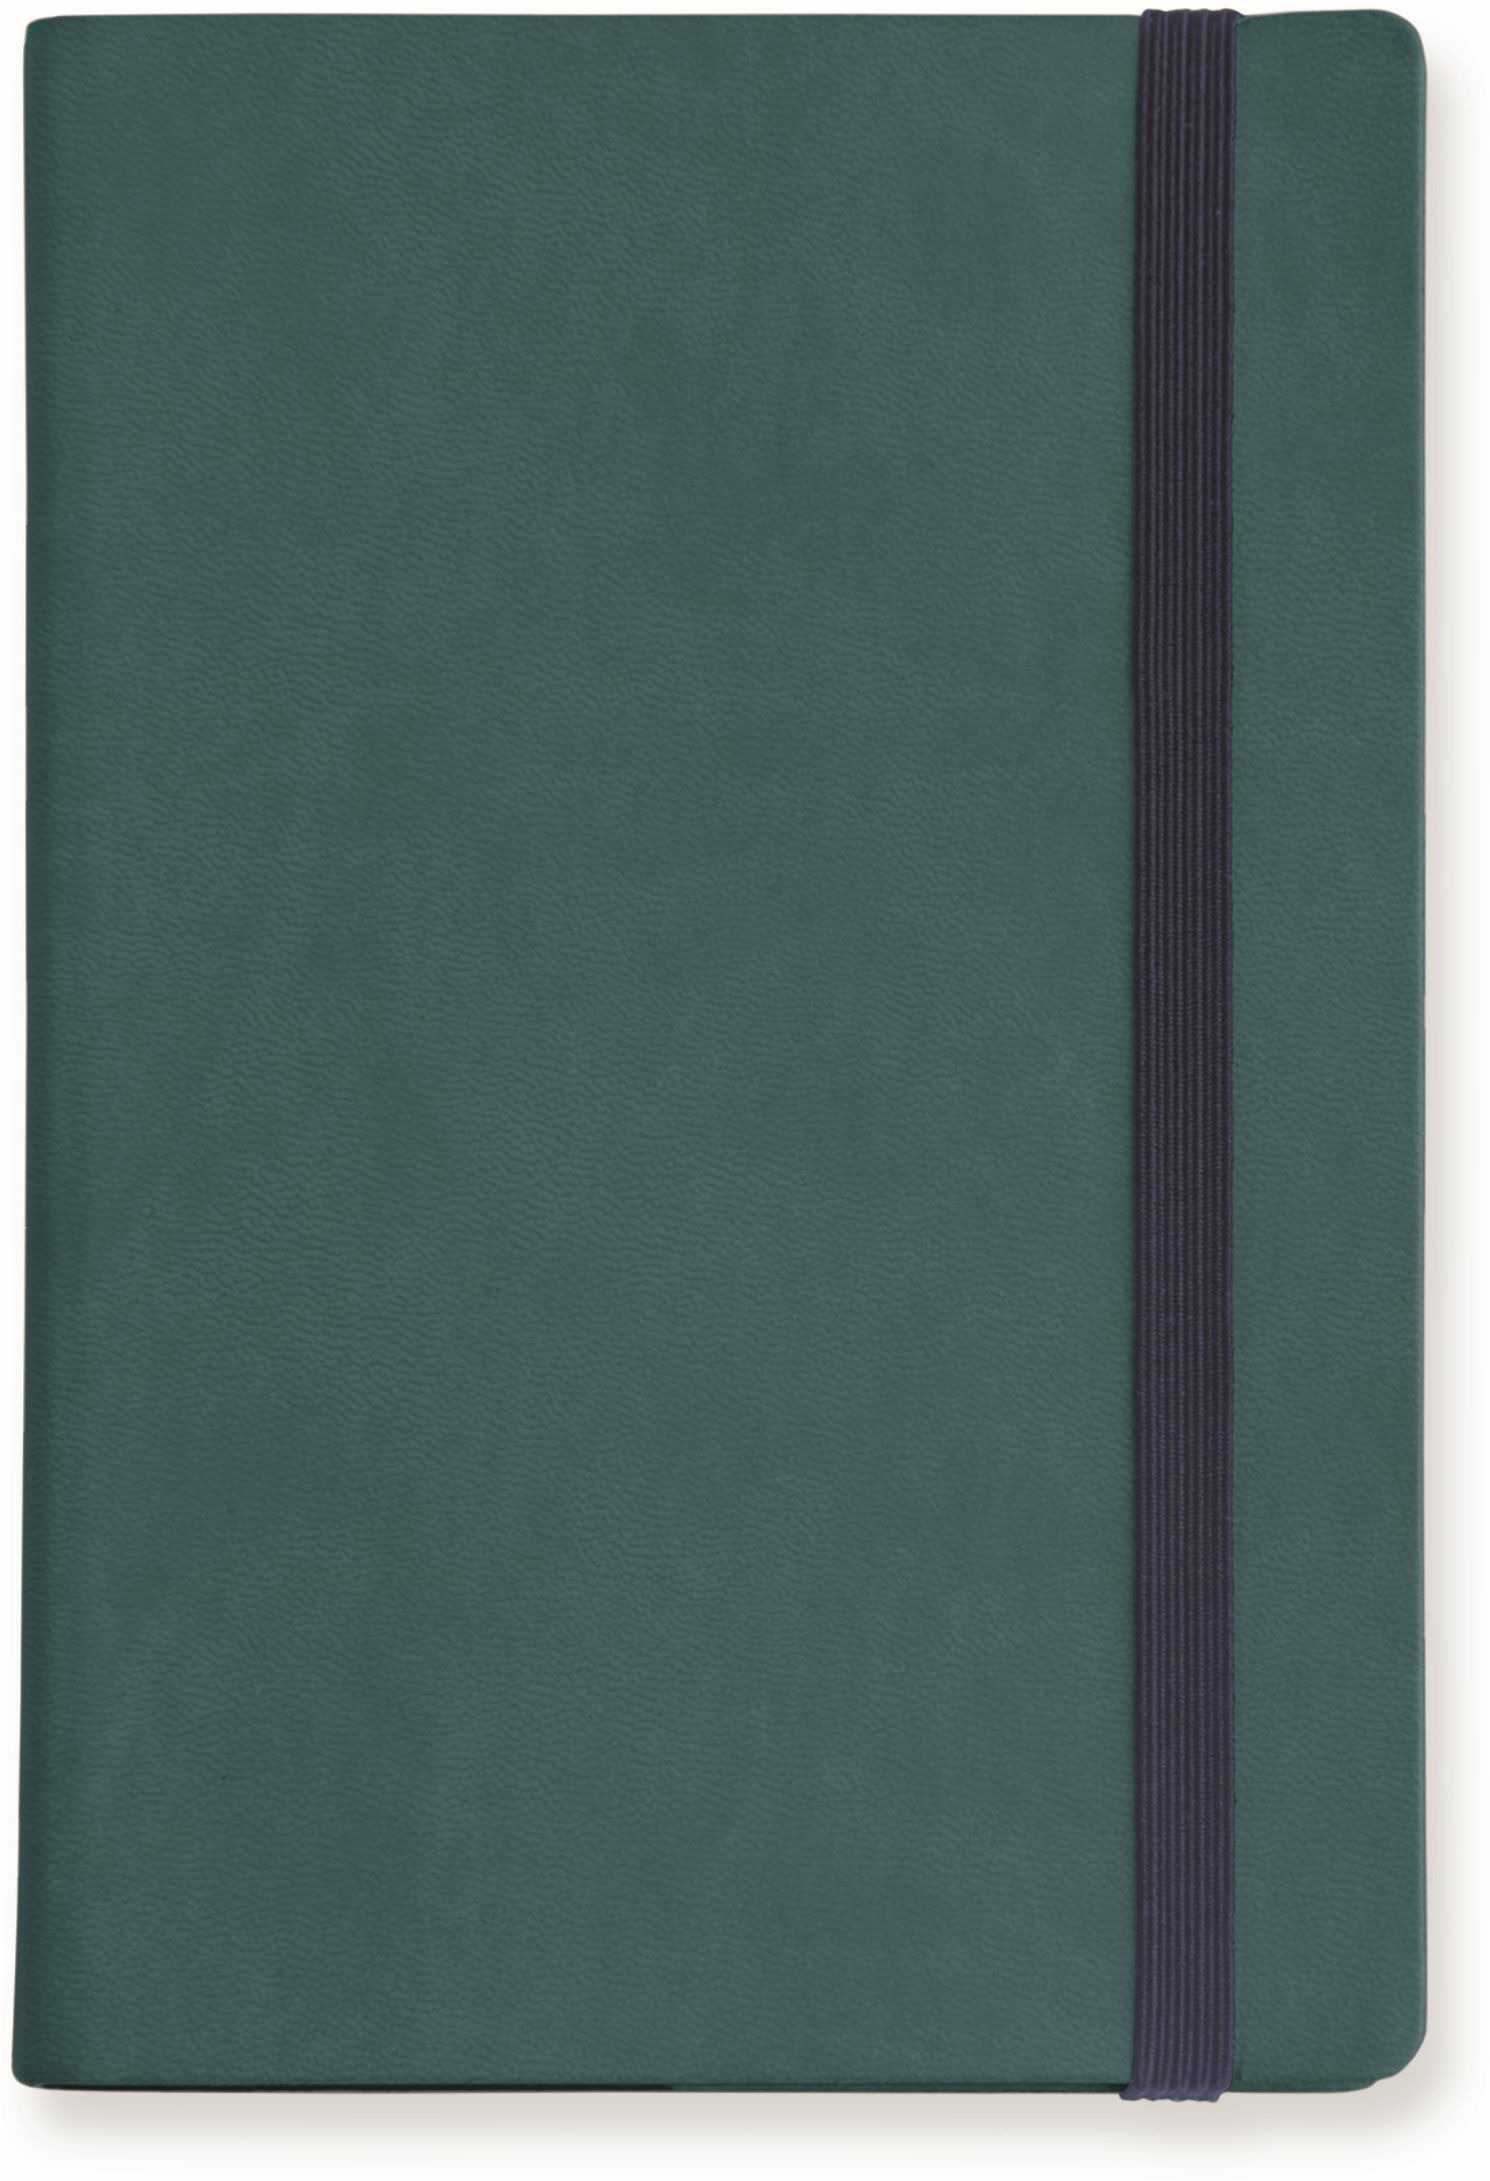 Image of My Notebook Large a pagine bianche. Blu petrolio